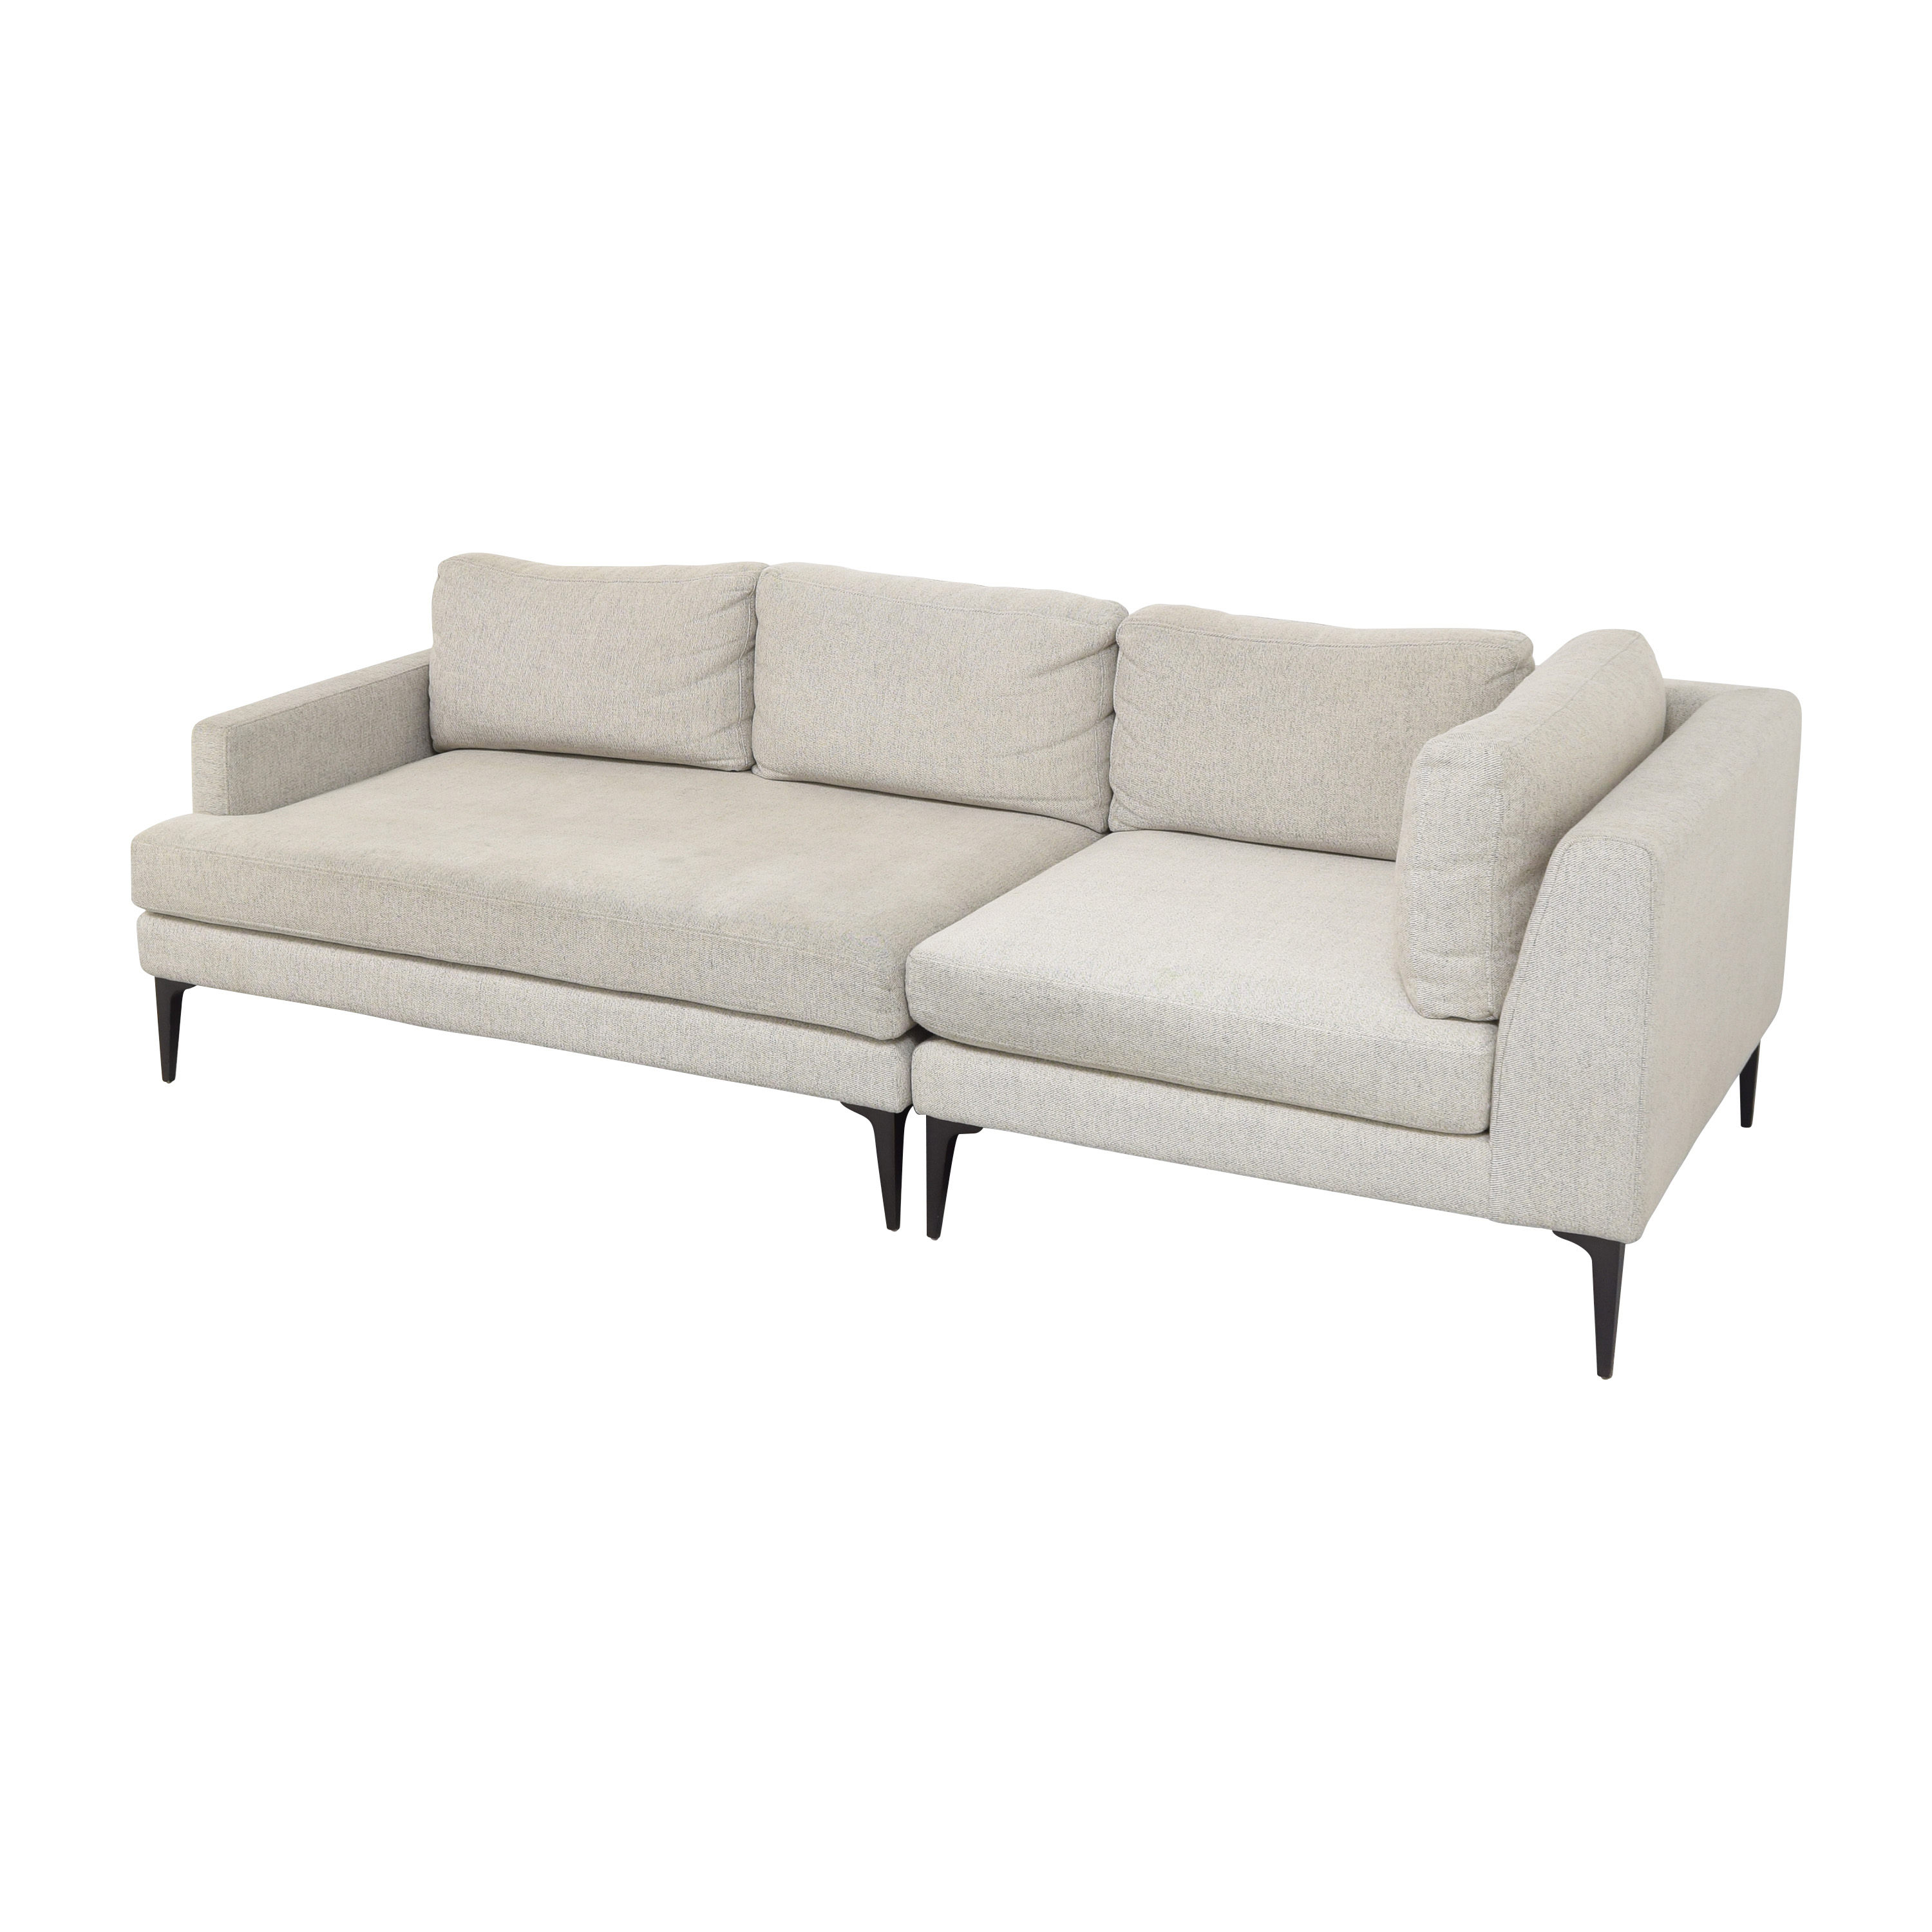 West Elm Andes Three Piece Chaise Sectional Sofa / Sofas